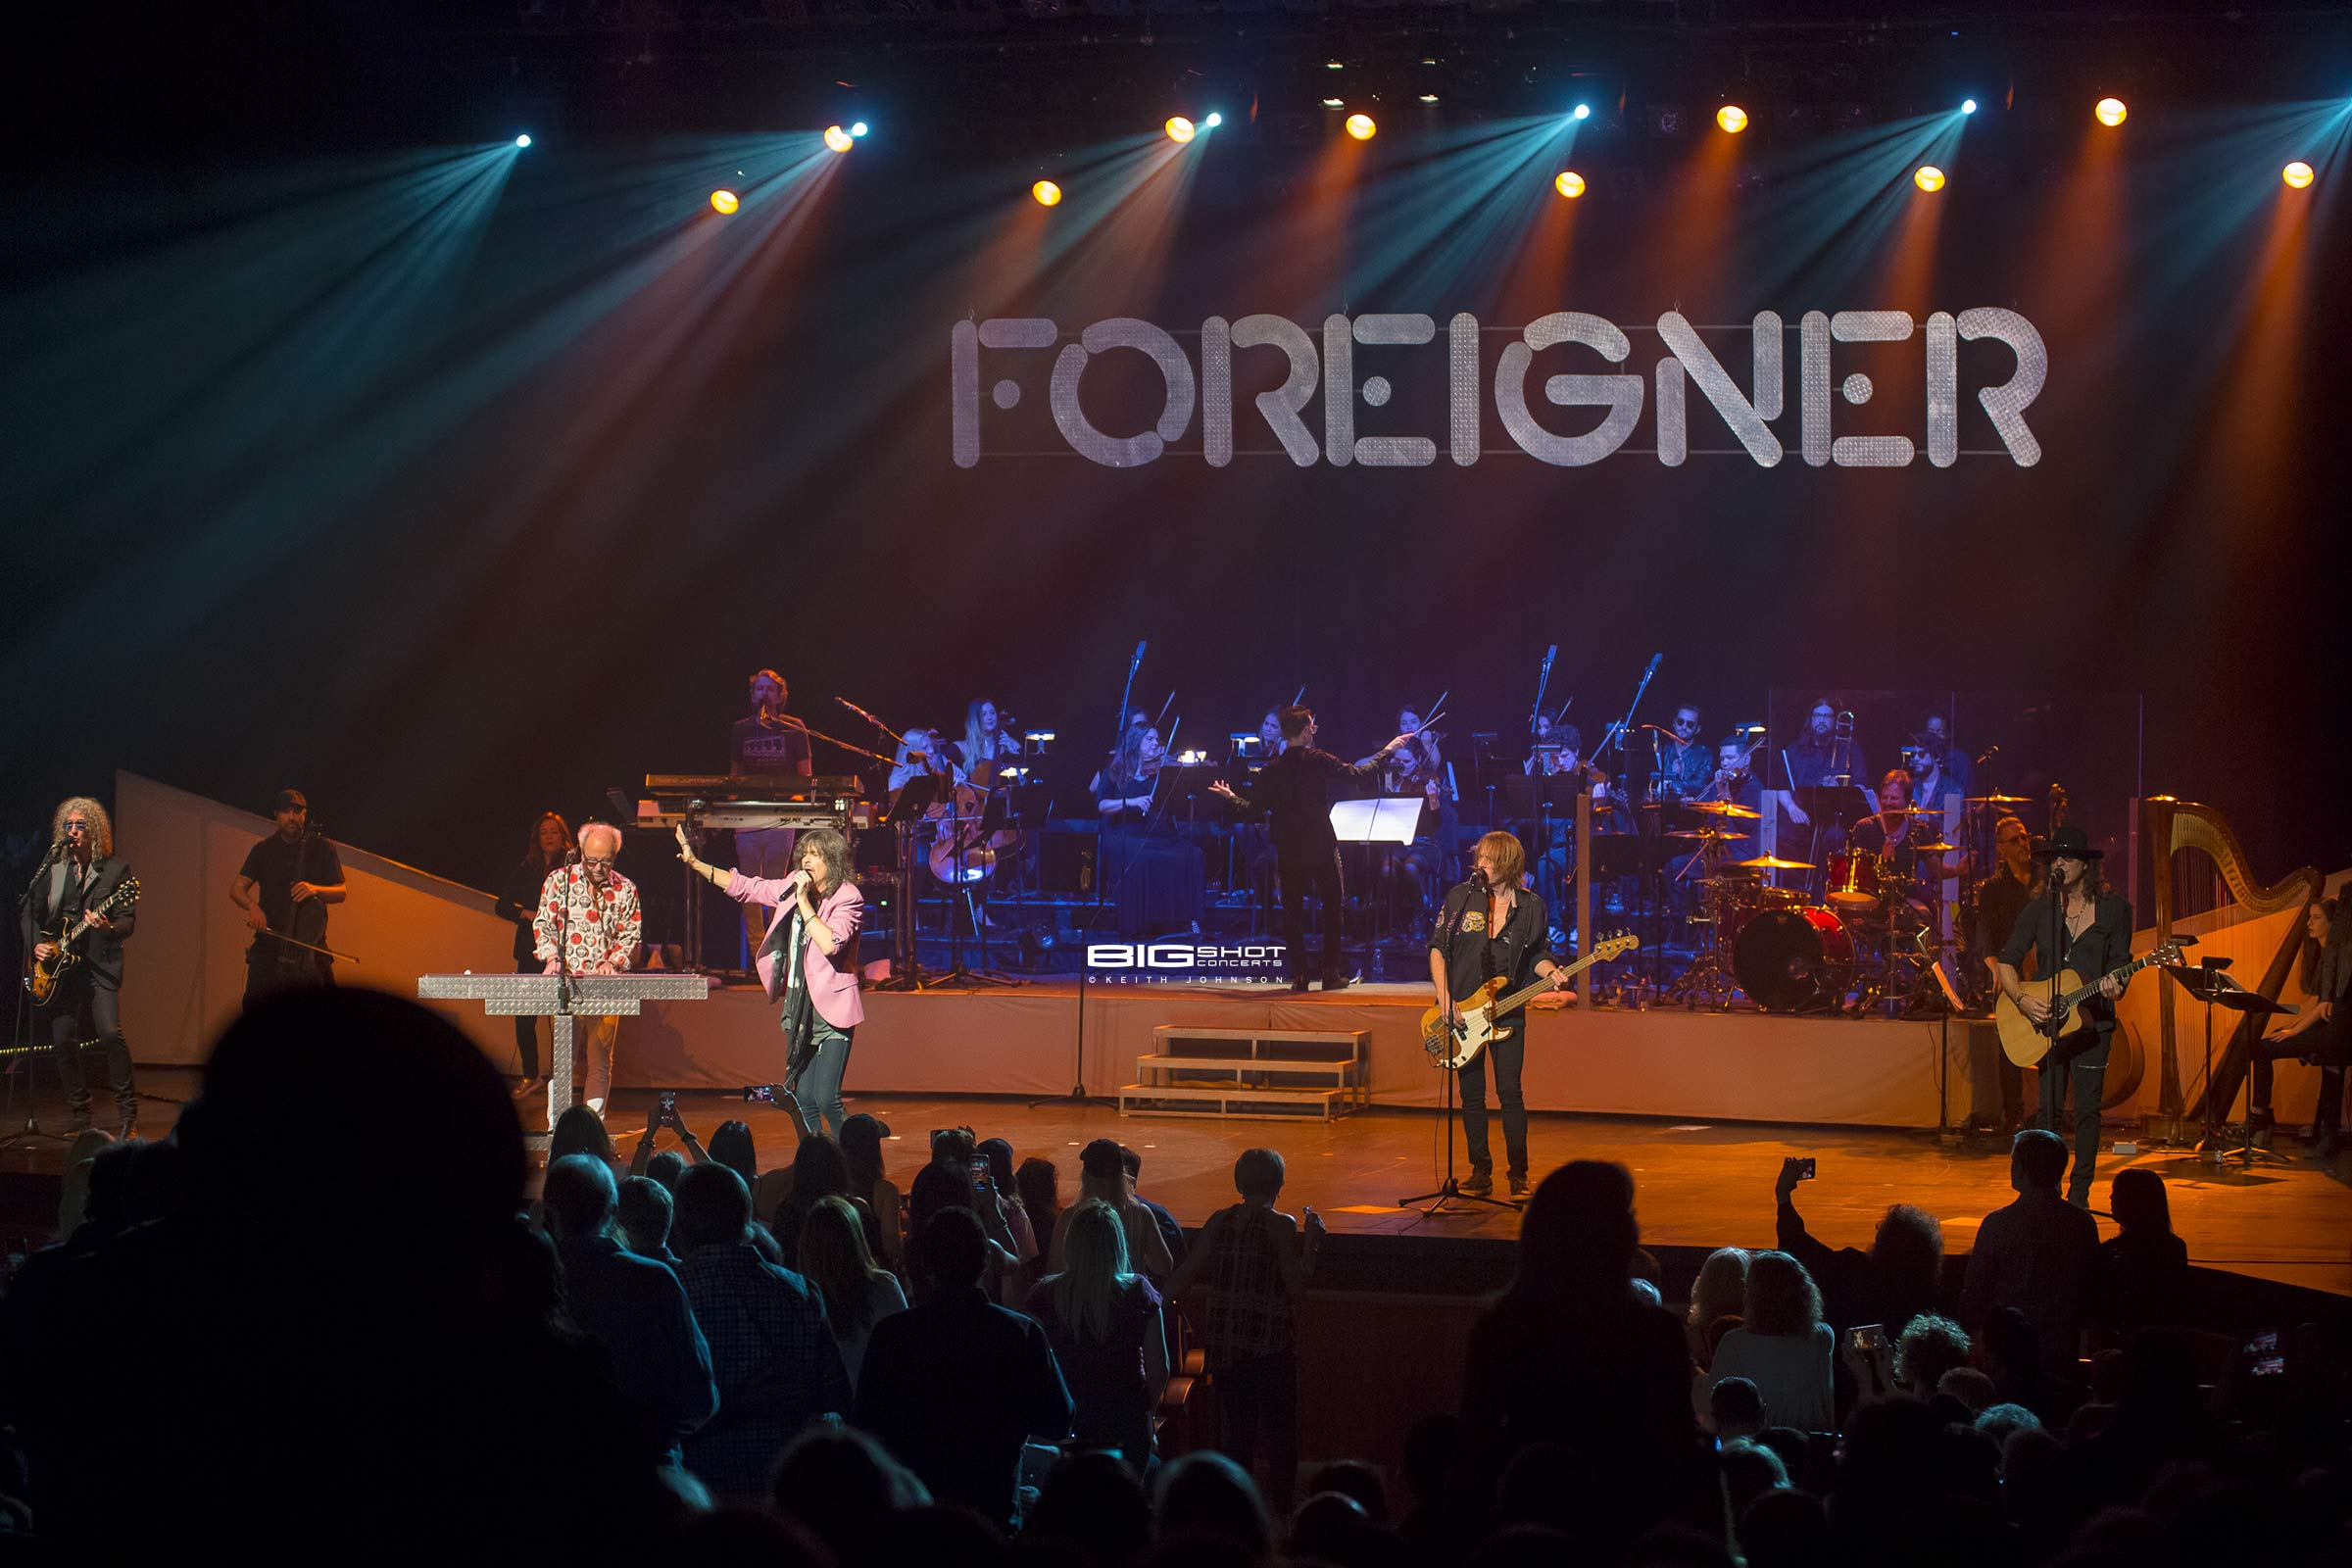 Foreigner Rock Orchestra at Broward Center